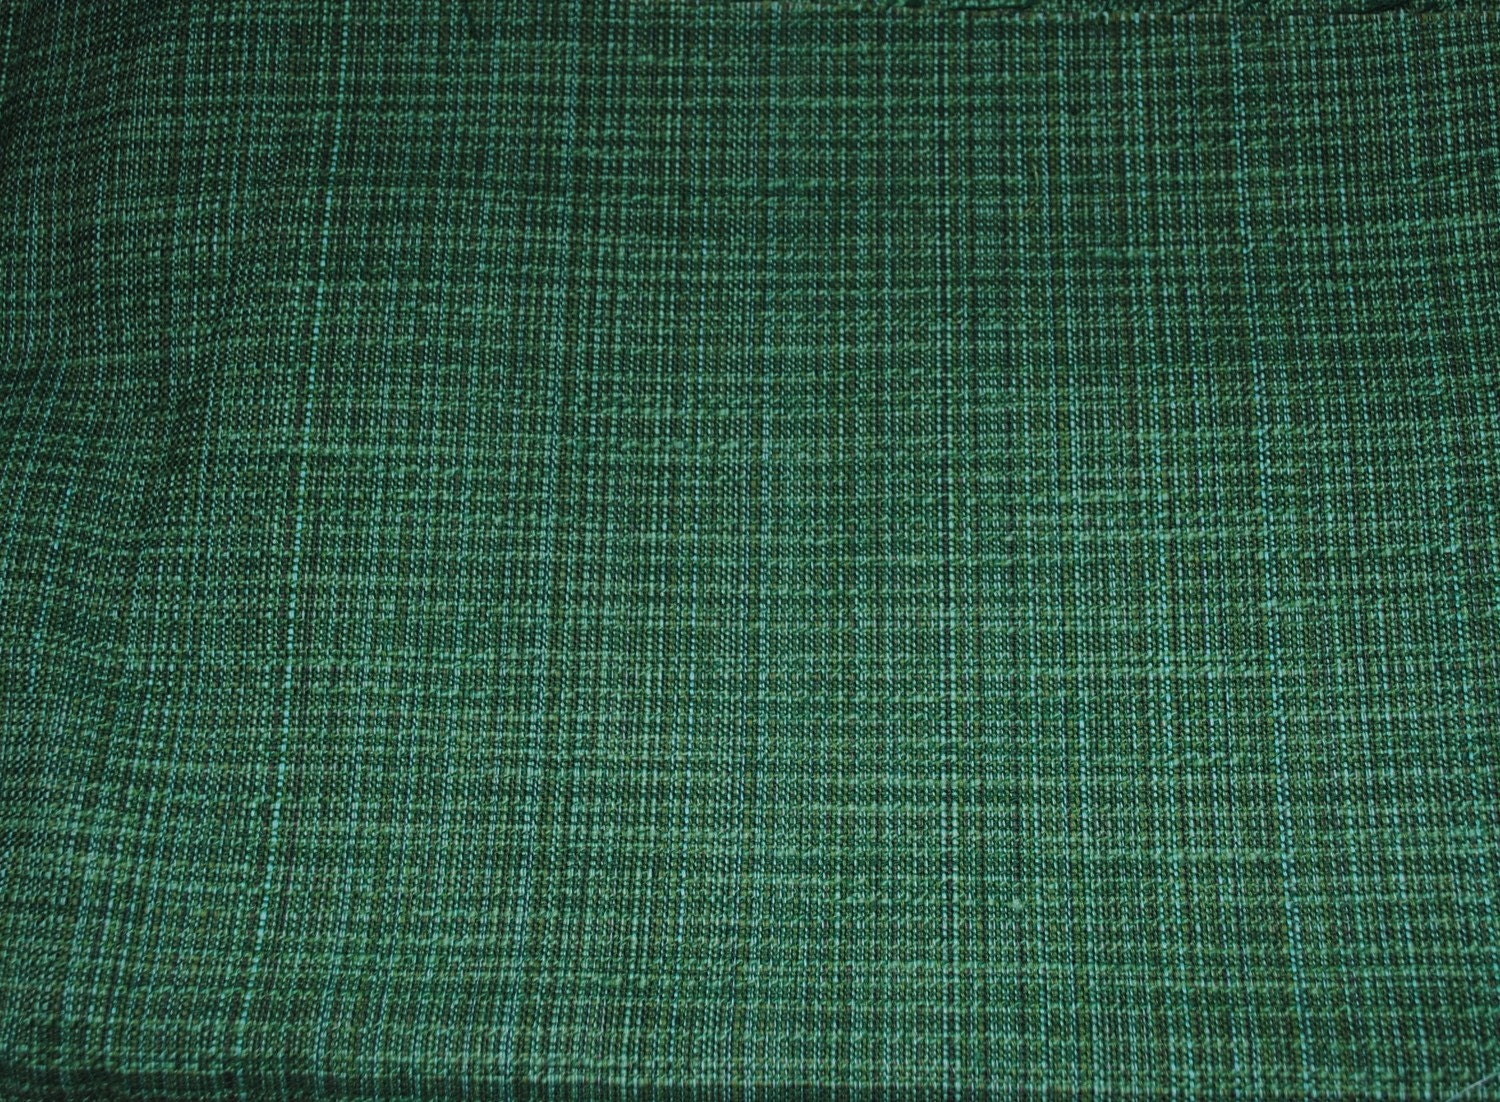 Olive Green Tweed Upholstery Fabric Material